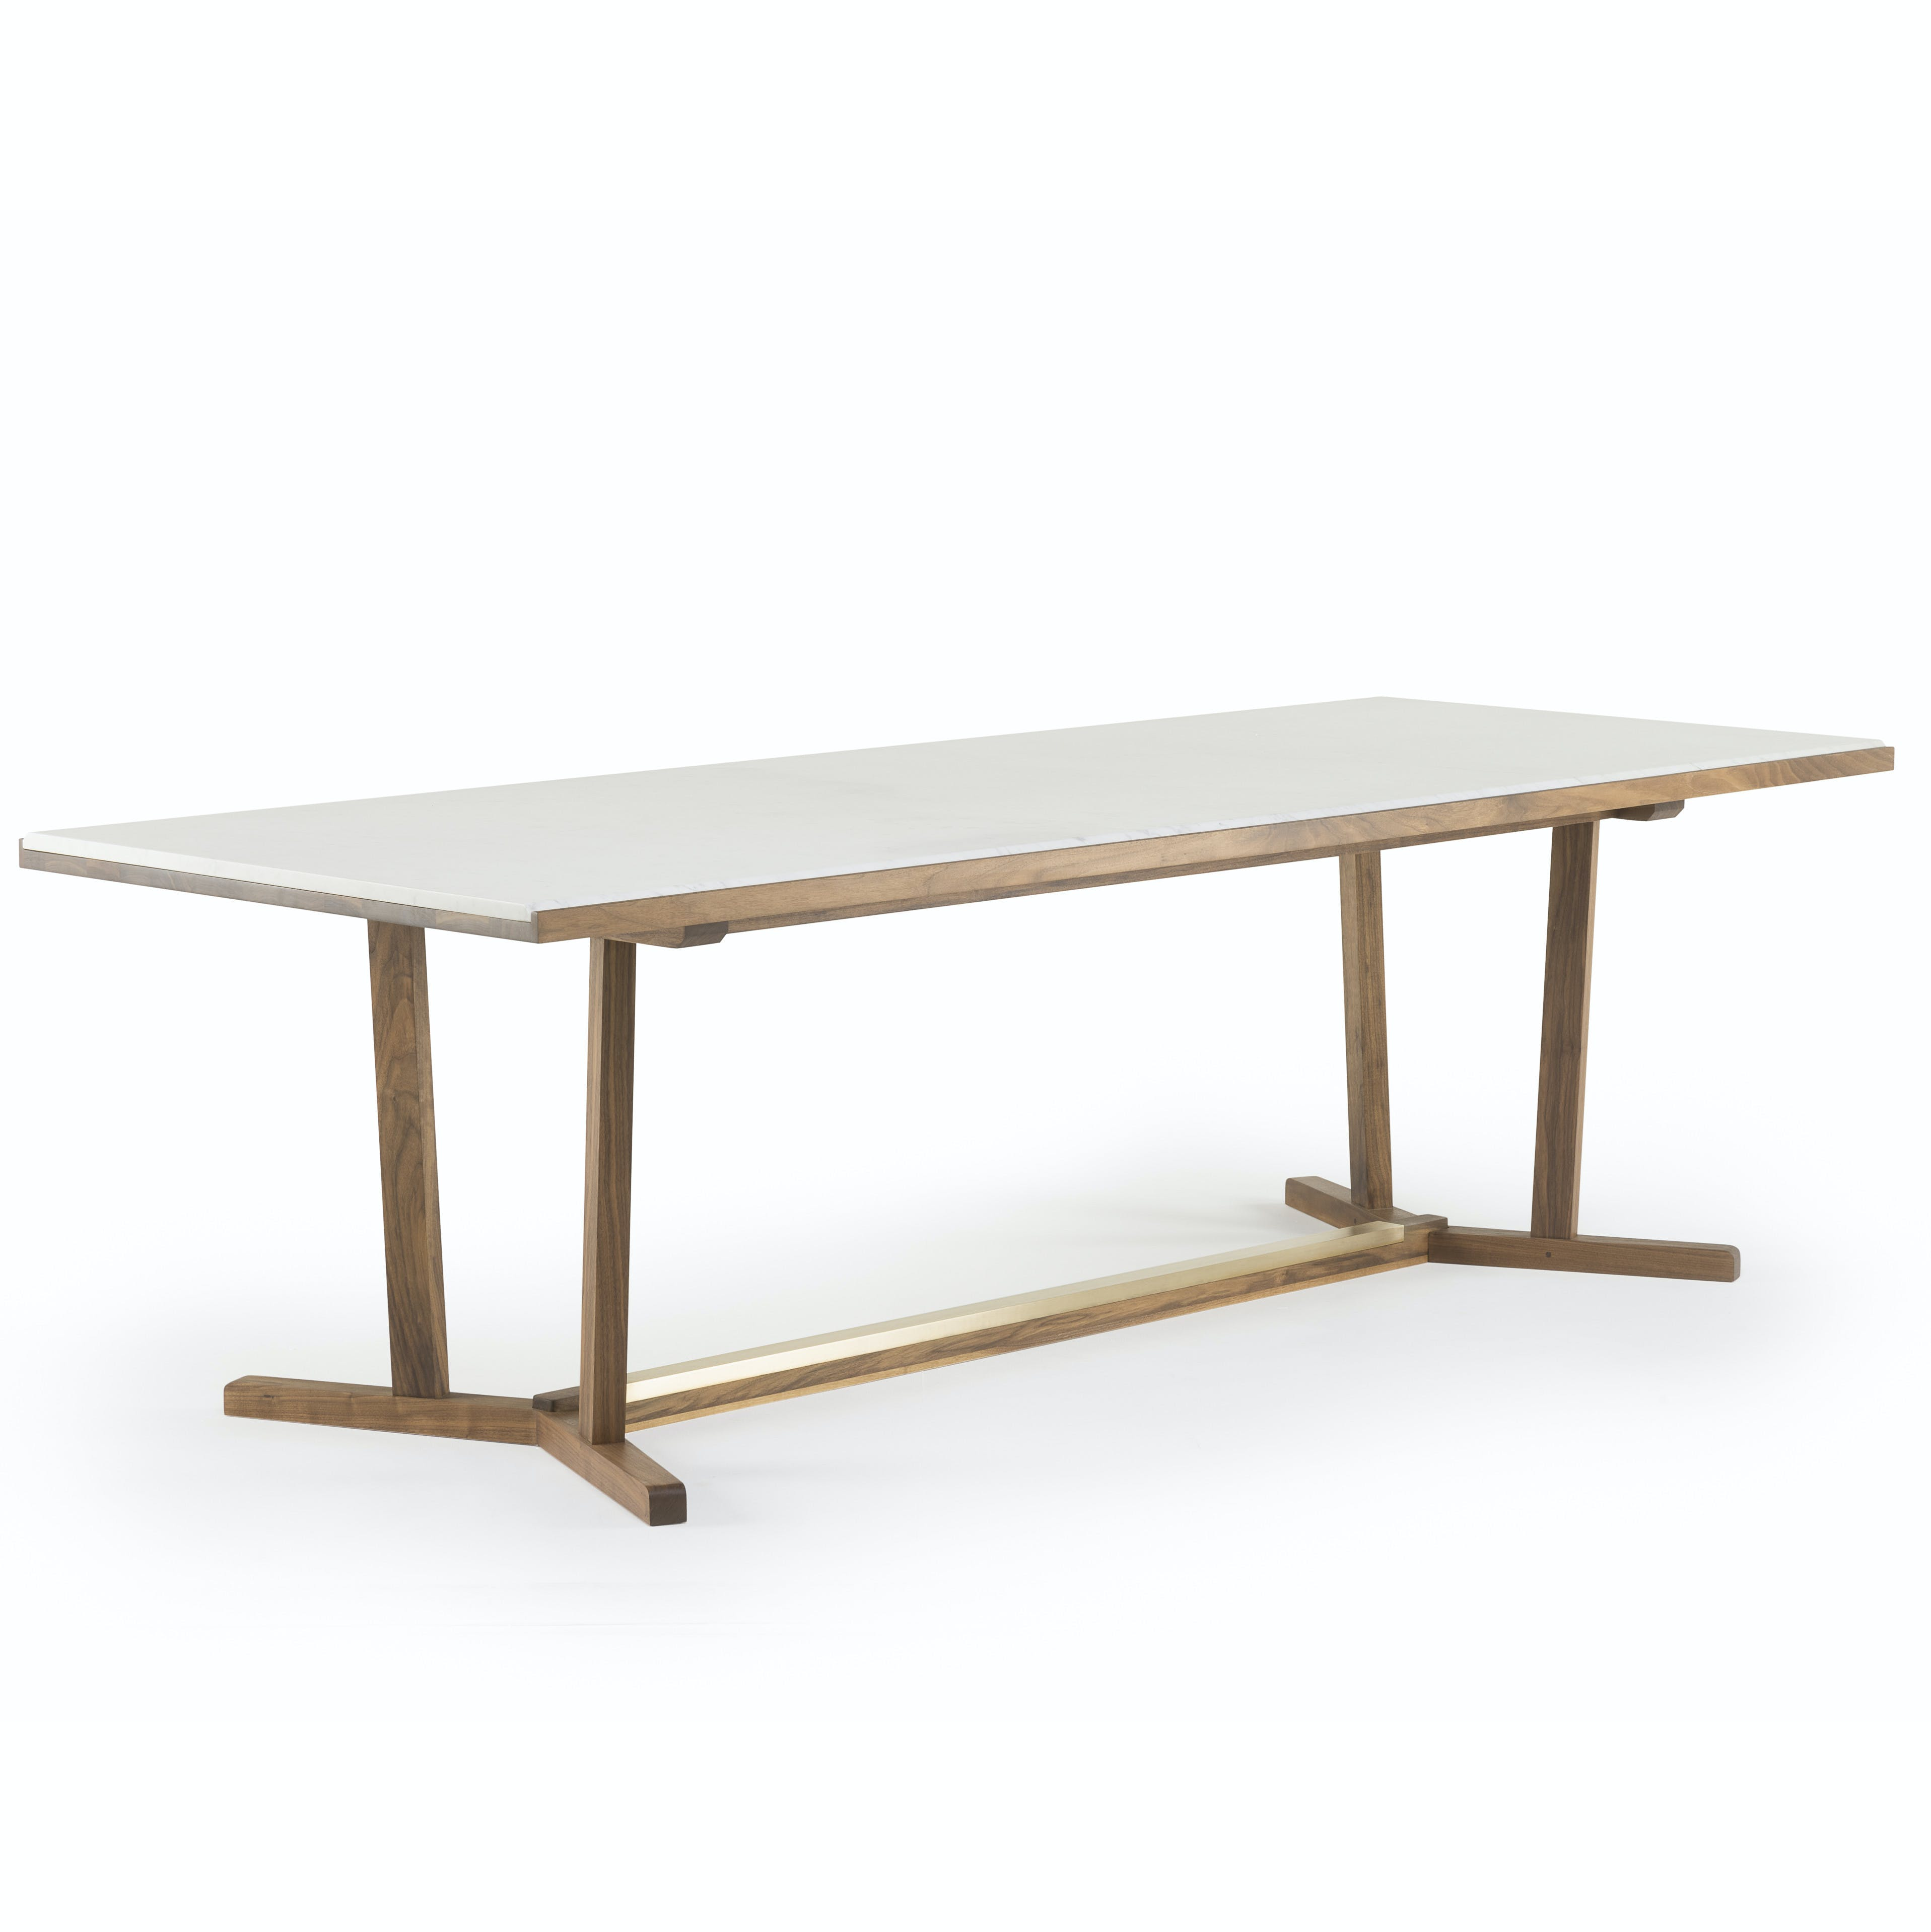 De La Espada Neri Hu Shaker Dining Table Thumbnail Haute Living